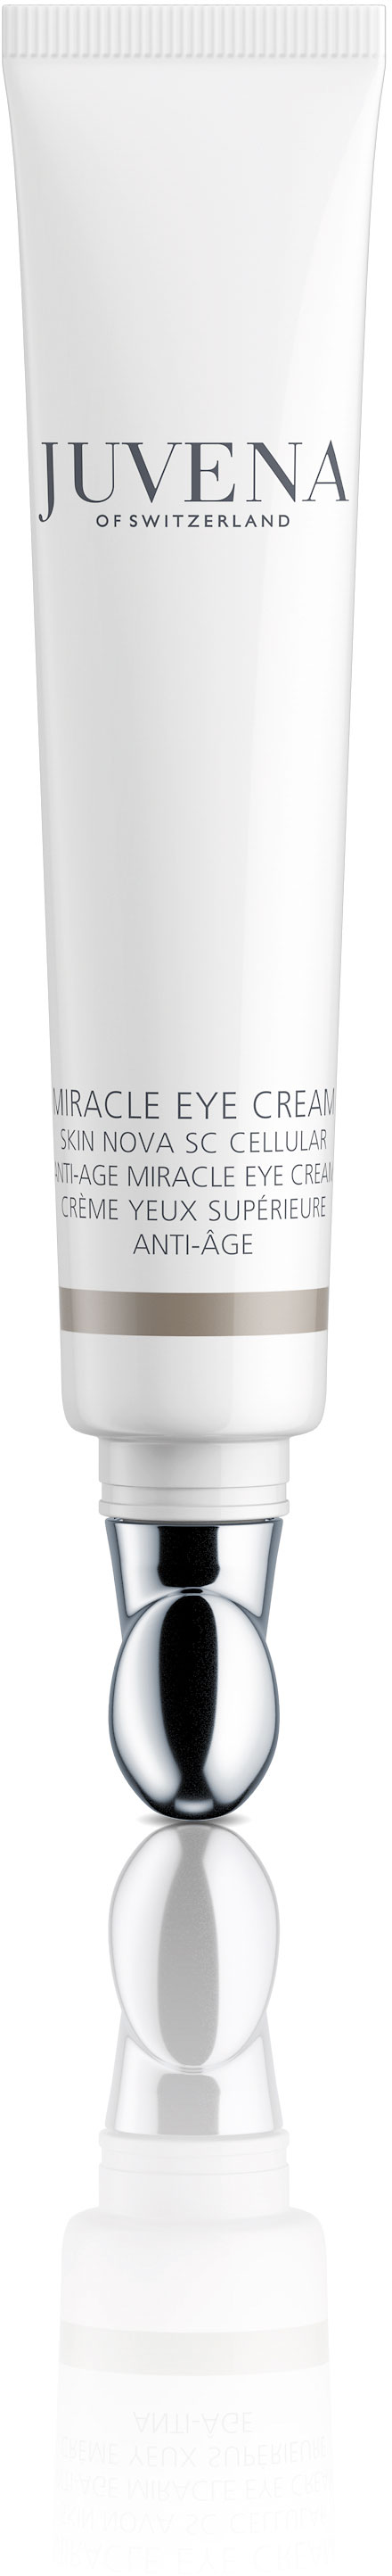 Juvena Specialists Miracle Eye Cream 20 ml